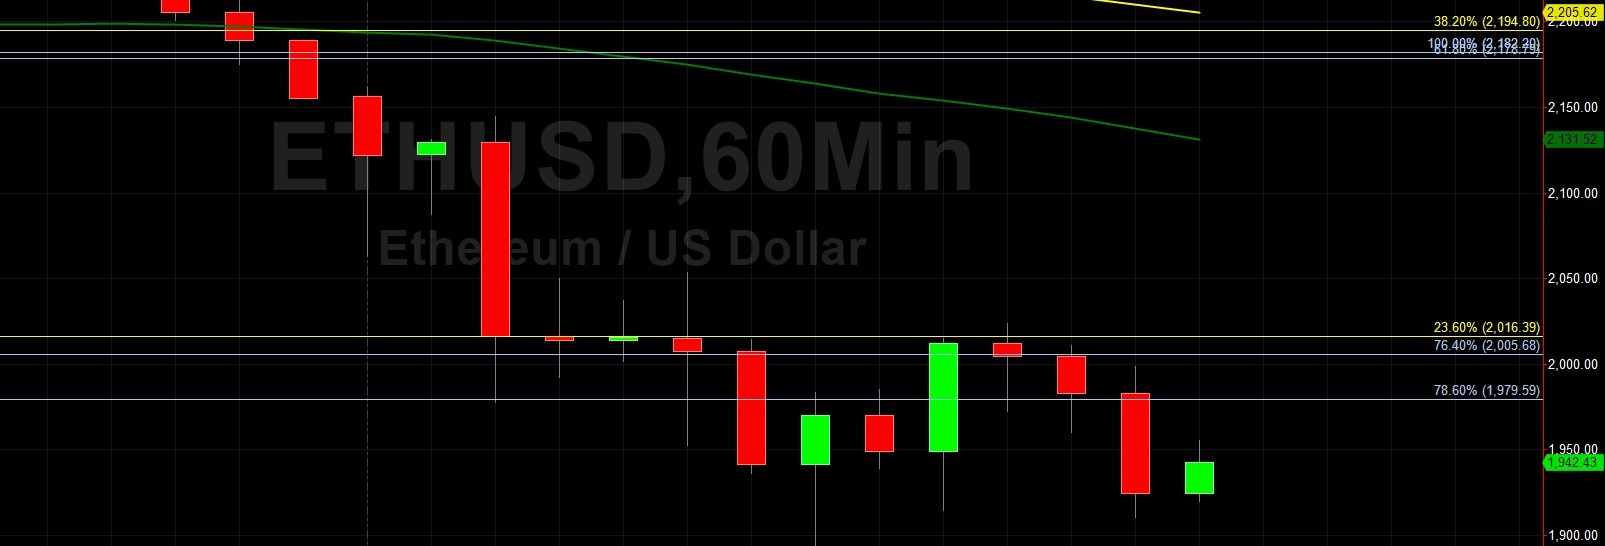 ETH/USD Elects Stops Below 2016:  Sally Ho's Technical Analysis 22 June 2021 ETH